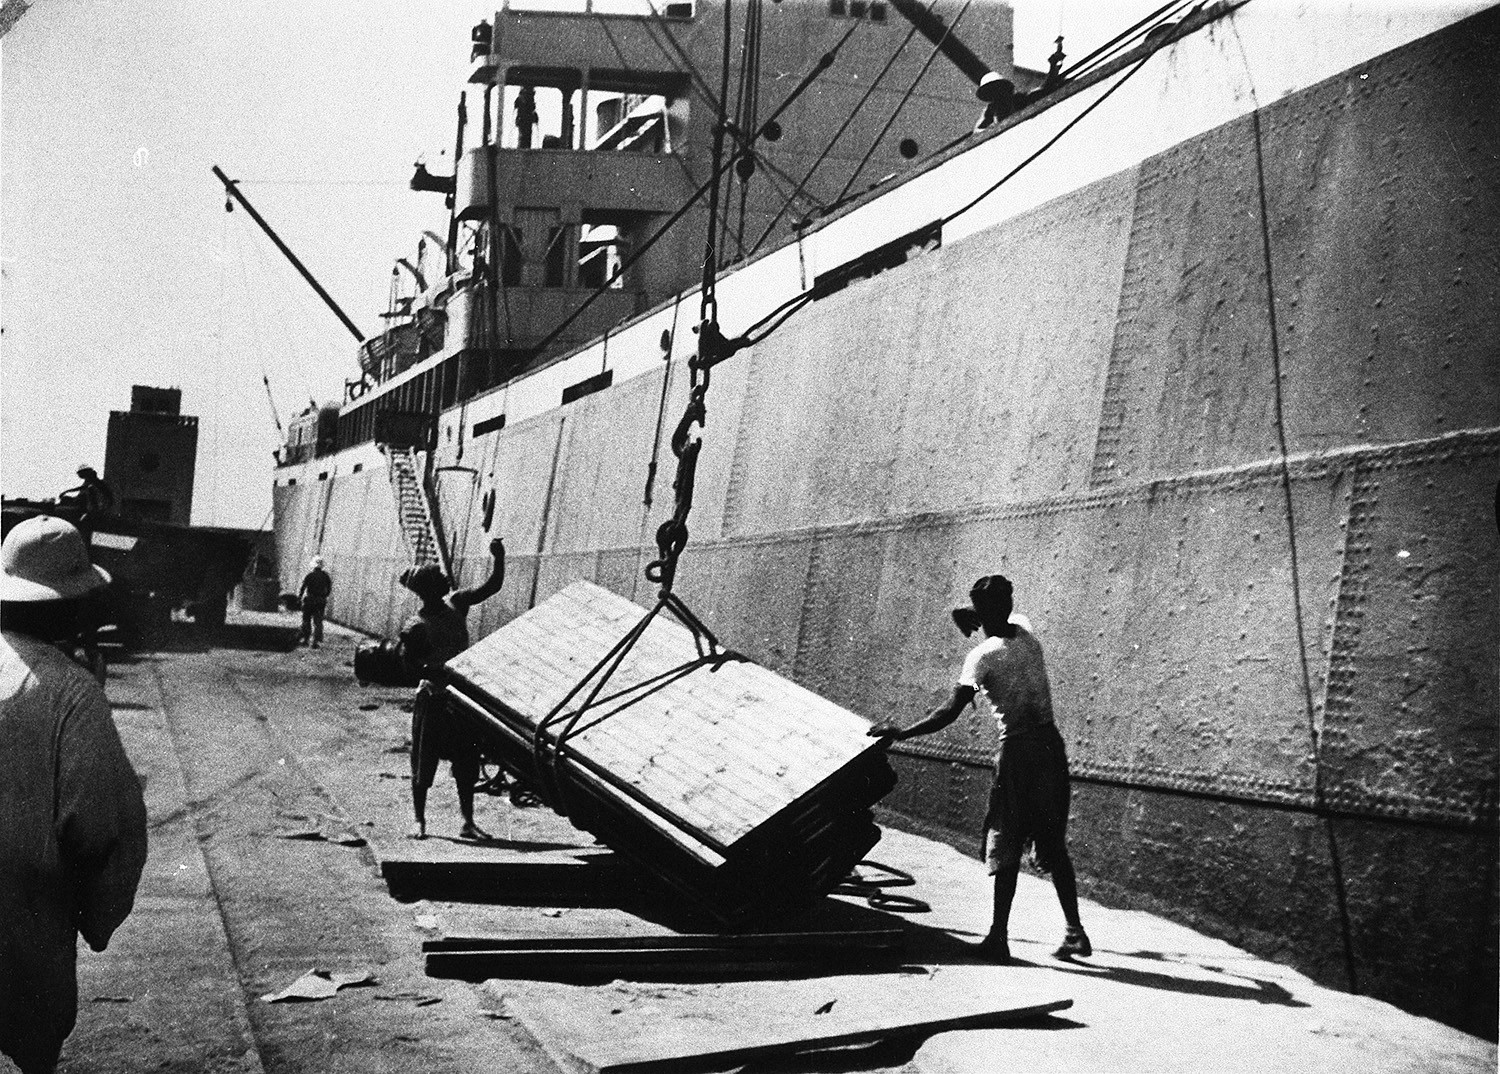 Black and white photo of Puutalo Oy panels being discharged at a harbour.